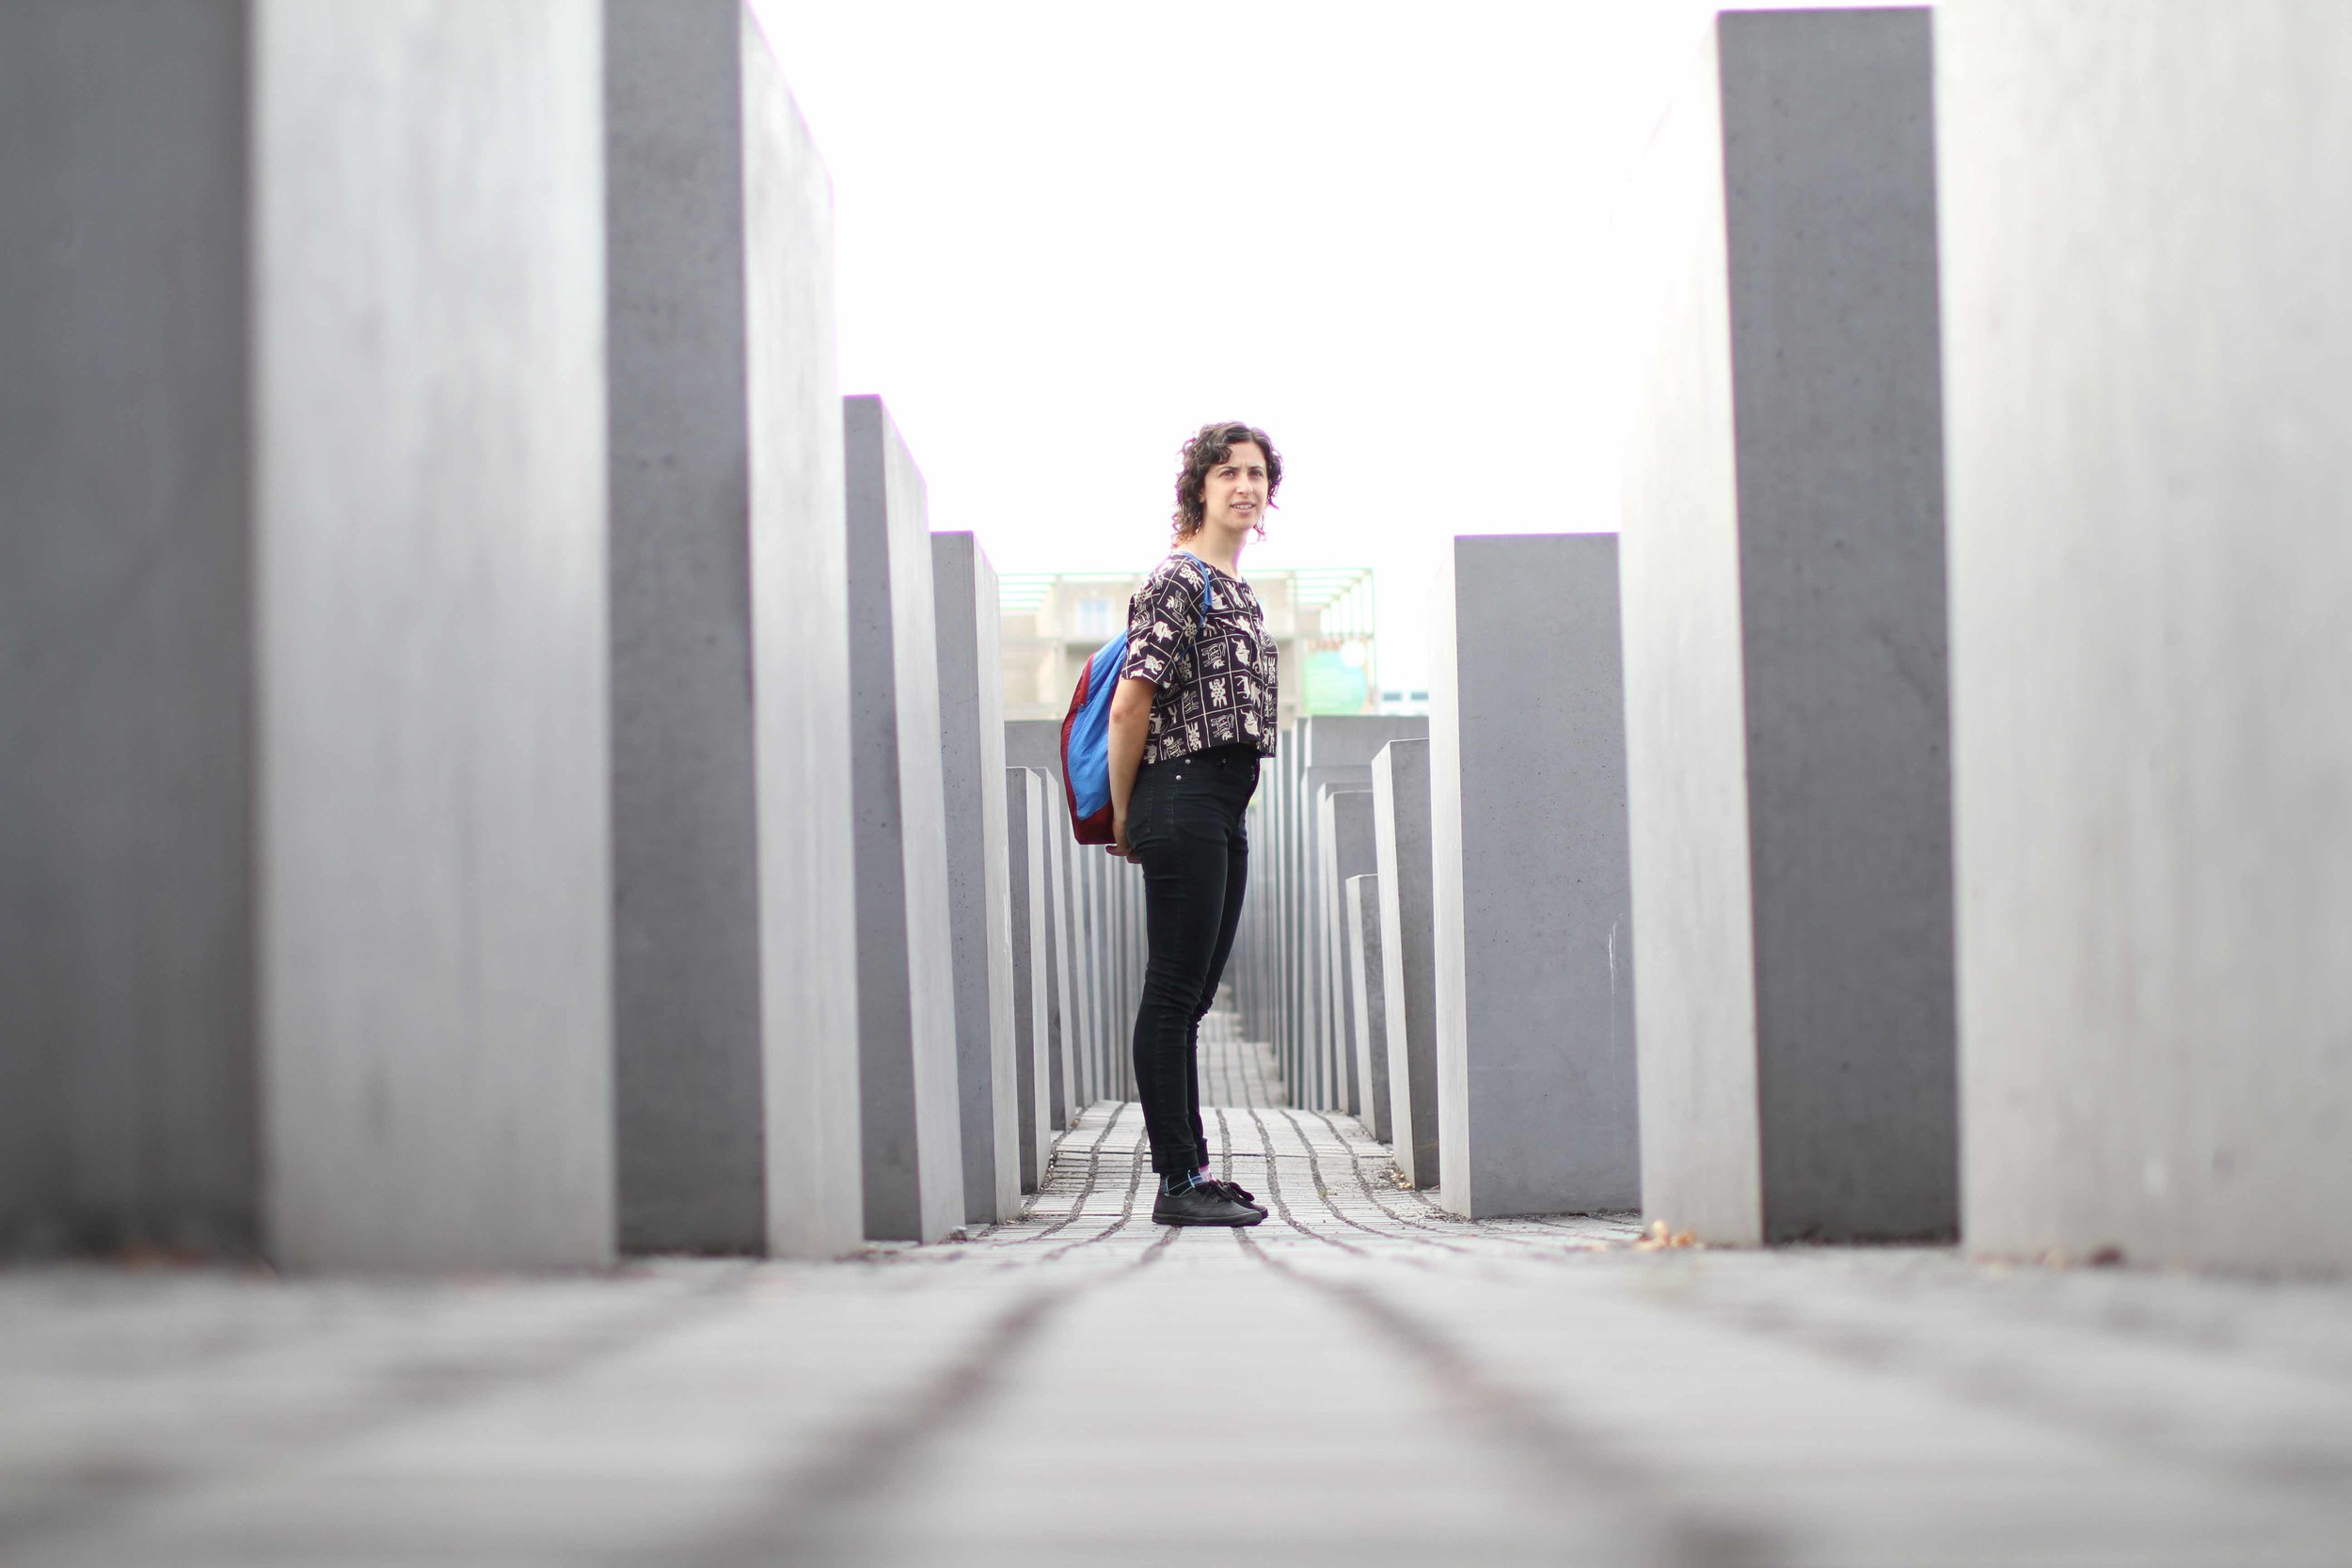 Standing in the Memorial to the Murdered Jews of Europe in Berlin. Meant to mimic grave stones, and erected in unending rows, you are forced you to move through the columns alone, meditating on the inconceivable horror of the Holocaust.     —